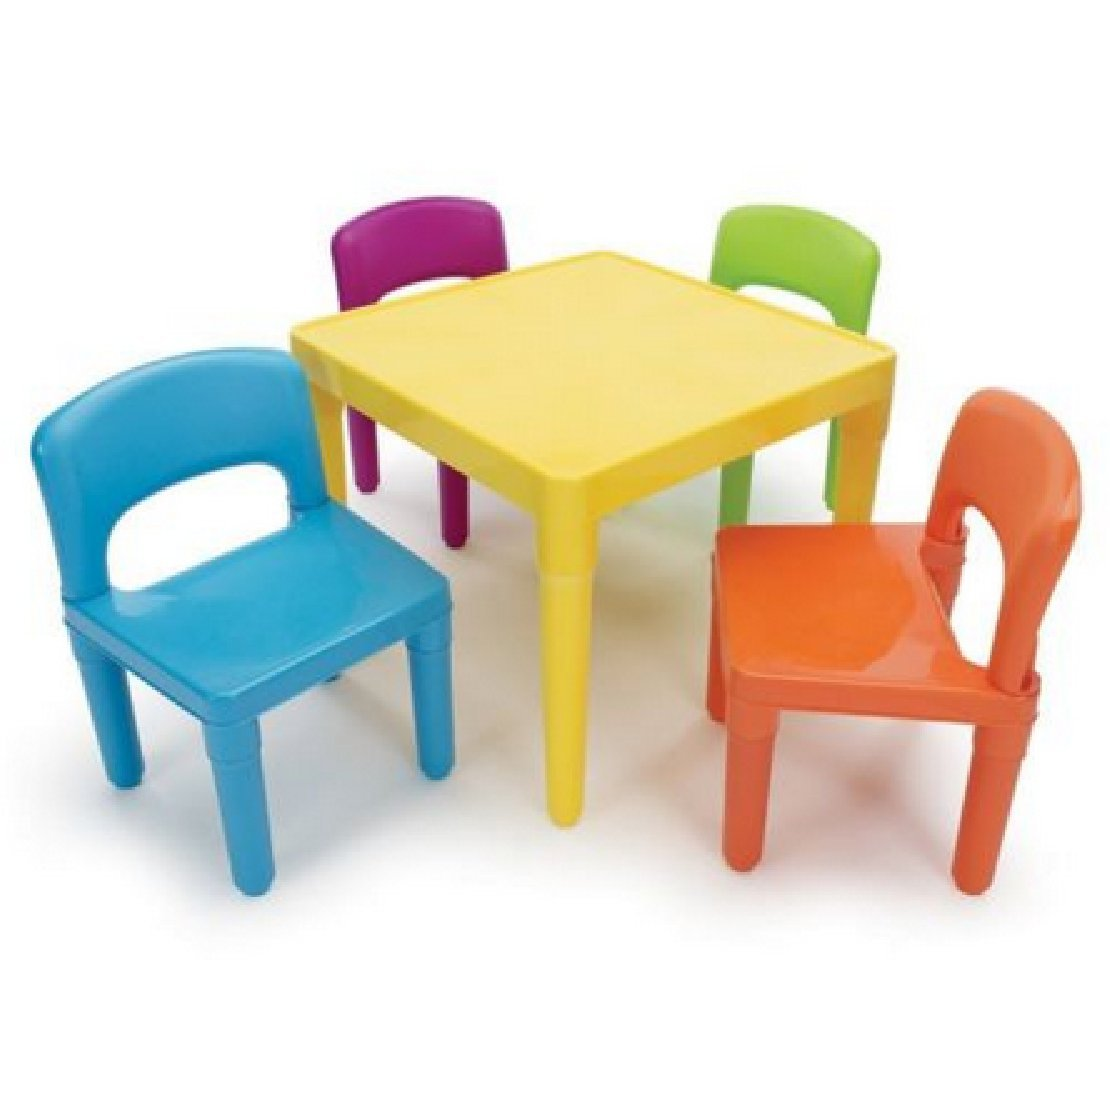 Amazon.com: Activity Table Kids Play Indoor Outdoor : Kids Table and ...